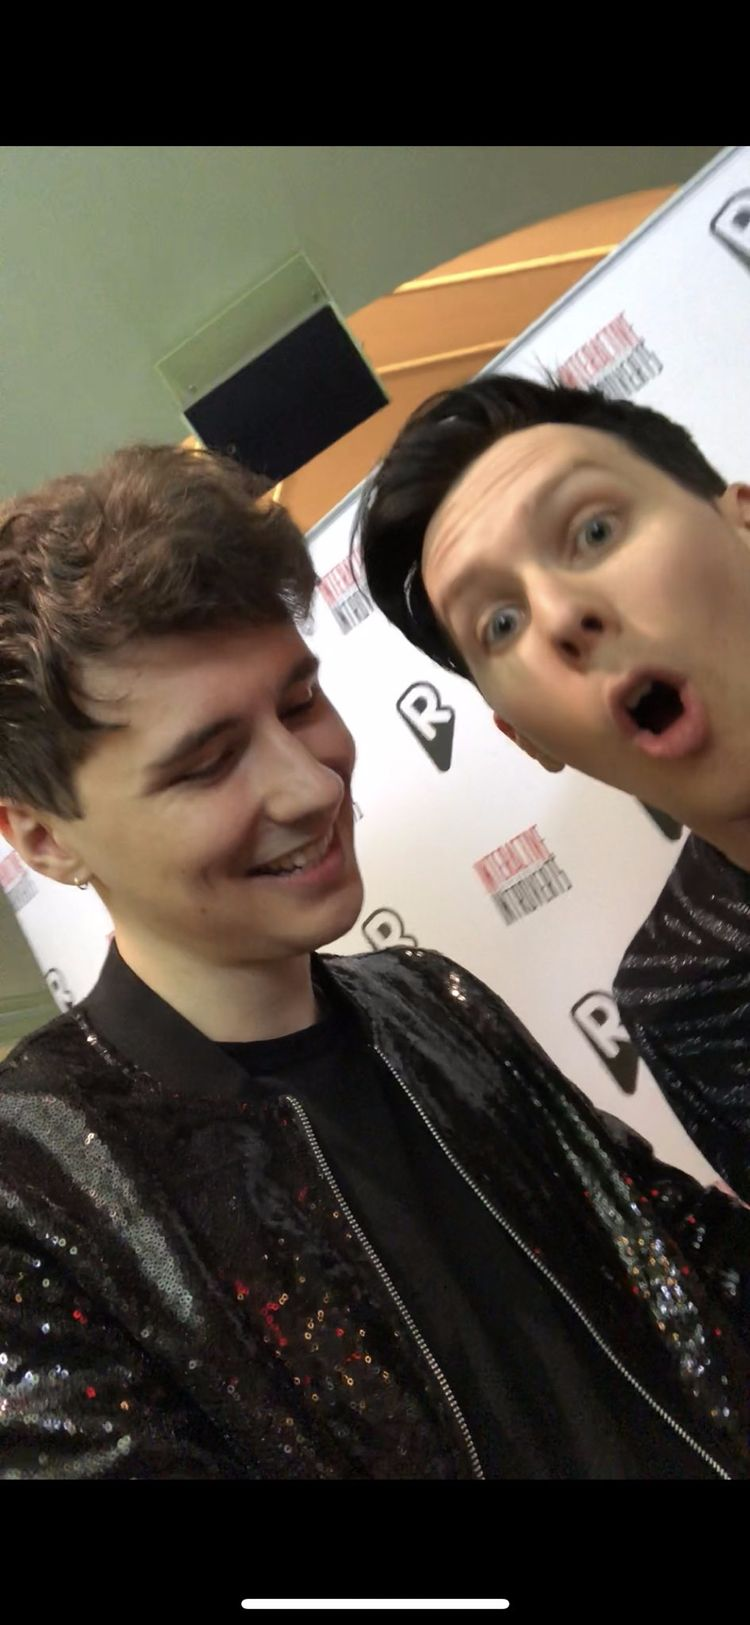 Hope day Dan Phil, love fucking - oyaoyaphilip | ello